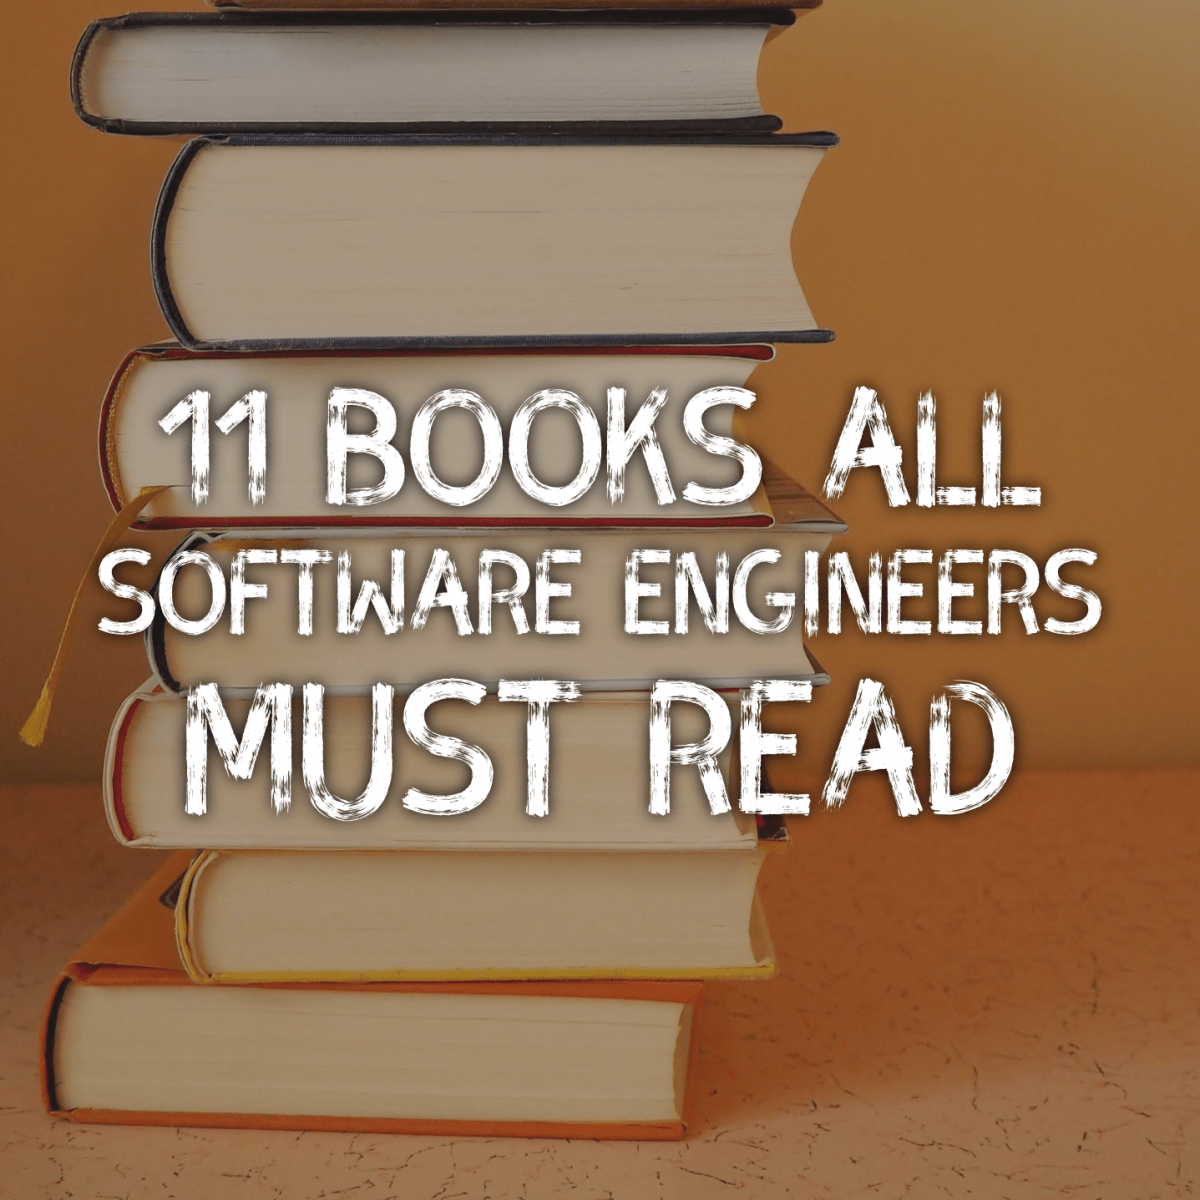 IMG_6049 11 Books All Software Engineers Must Read products learning leadership education development process career advice